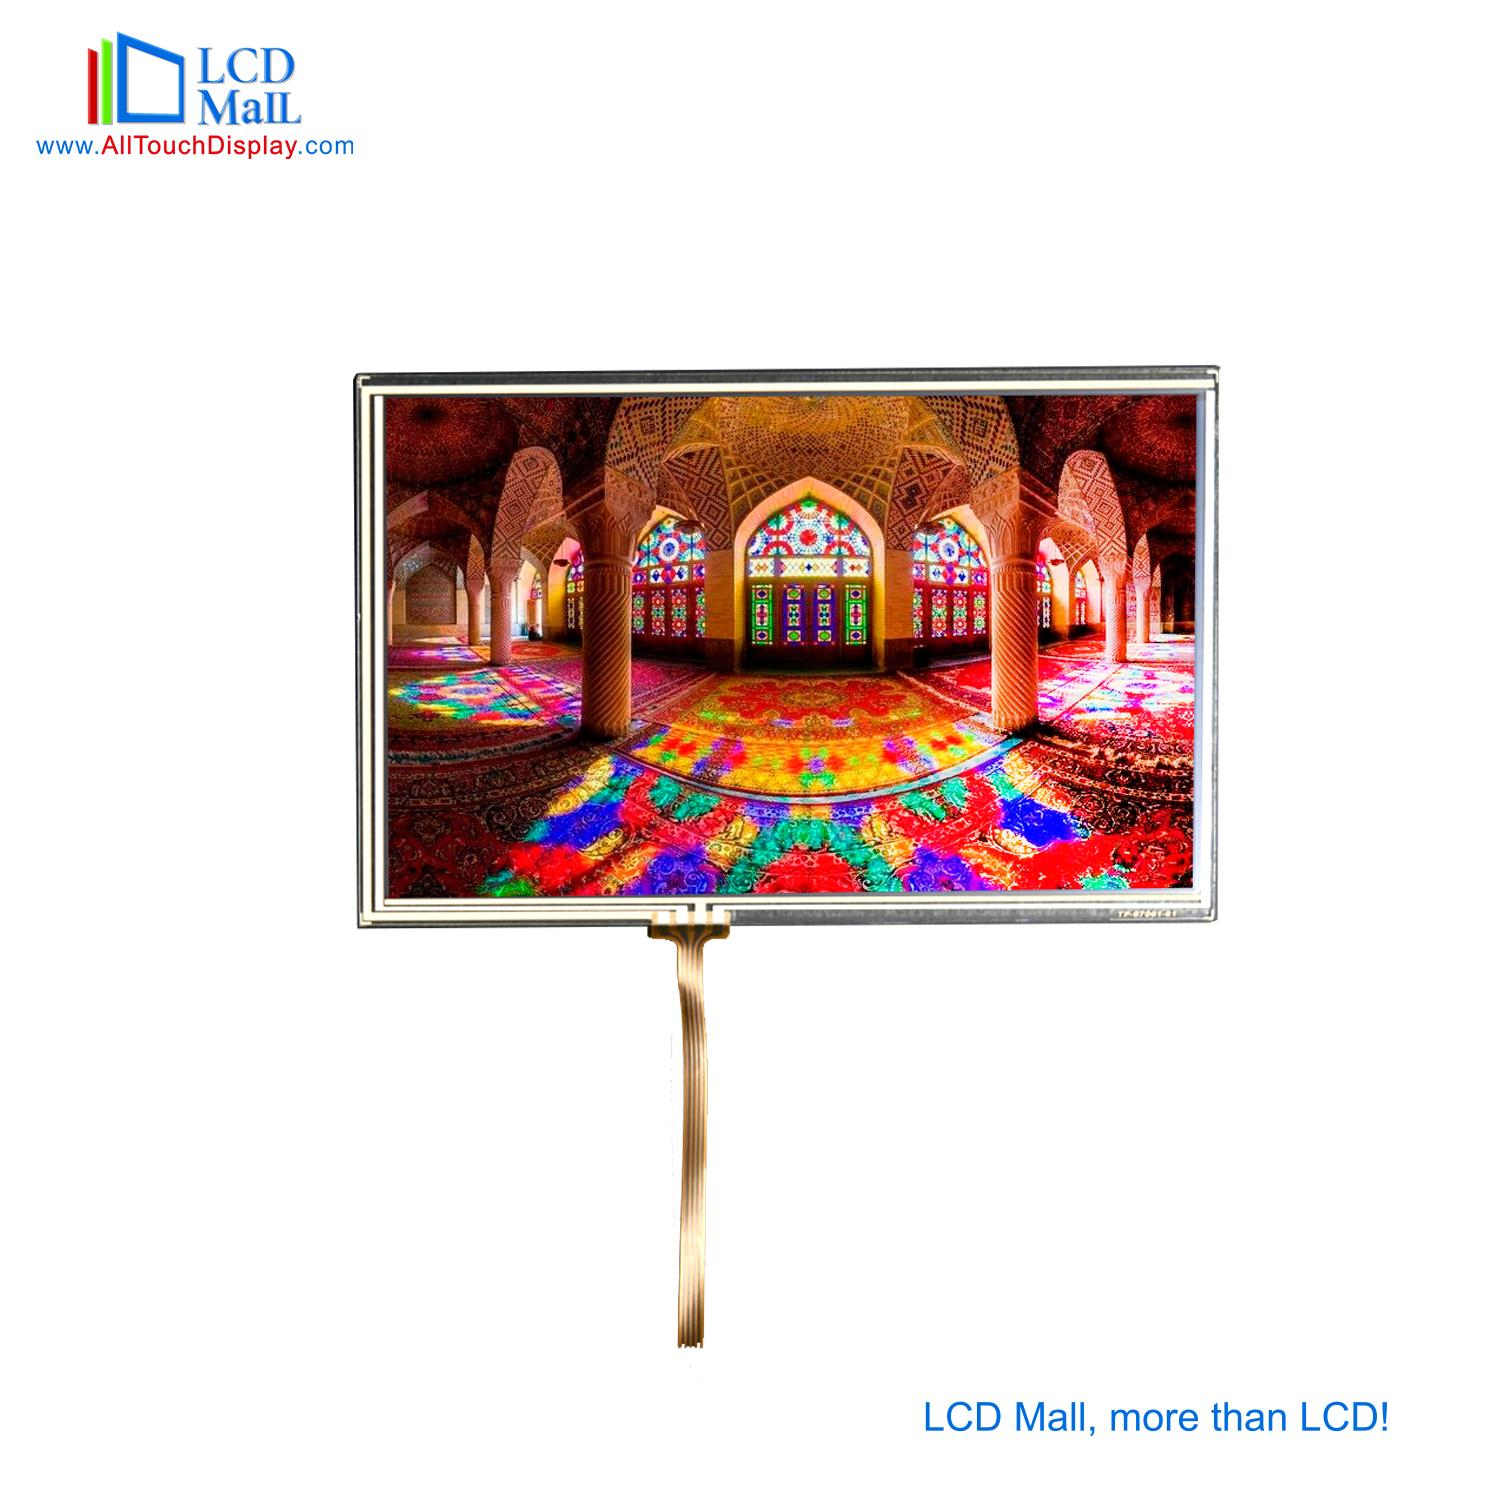 LCD Mall Array image89